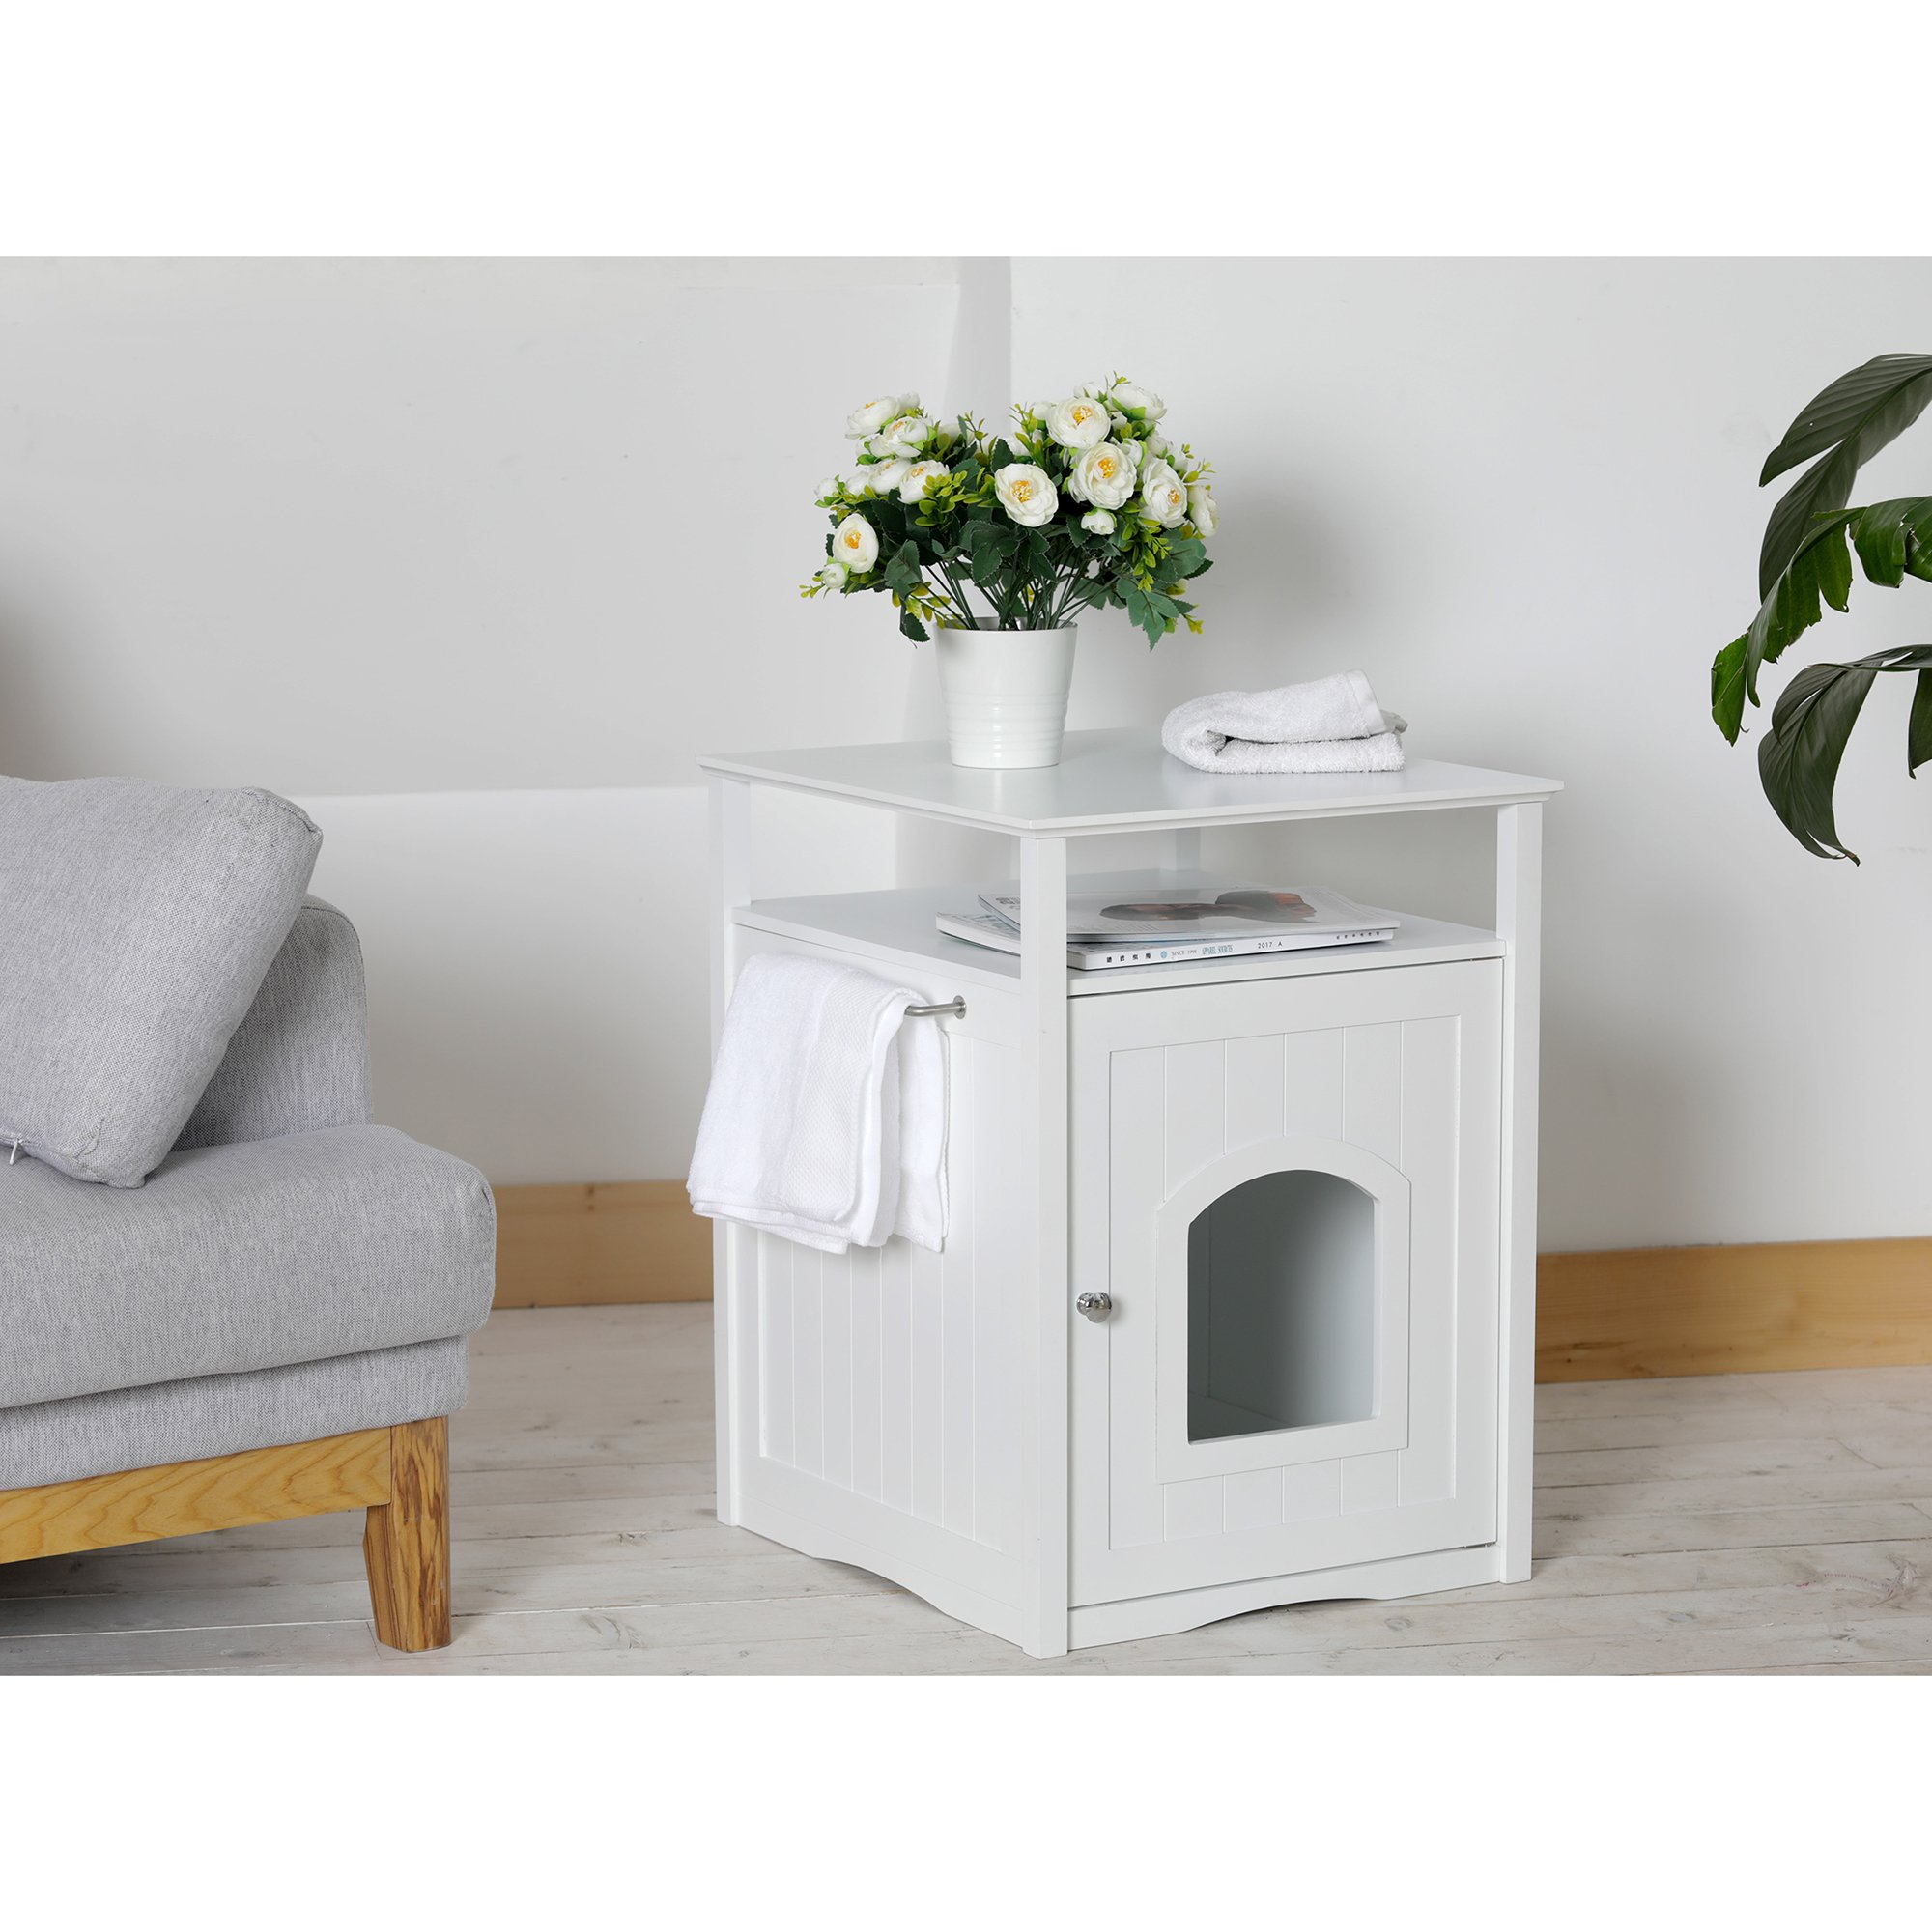 Merry Products Cat Washroom Night Stand & Pet House in White